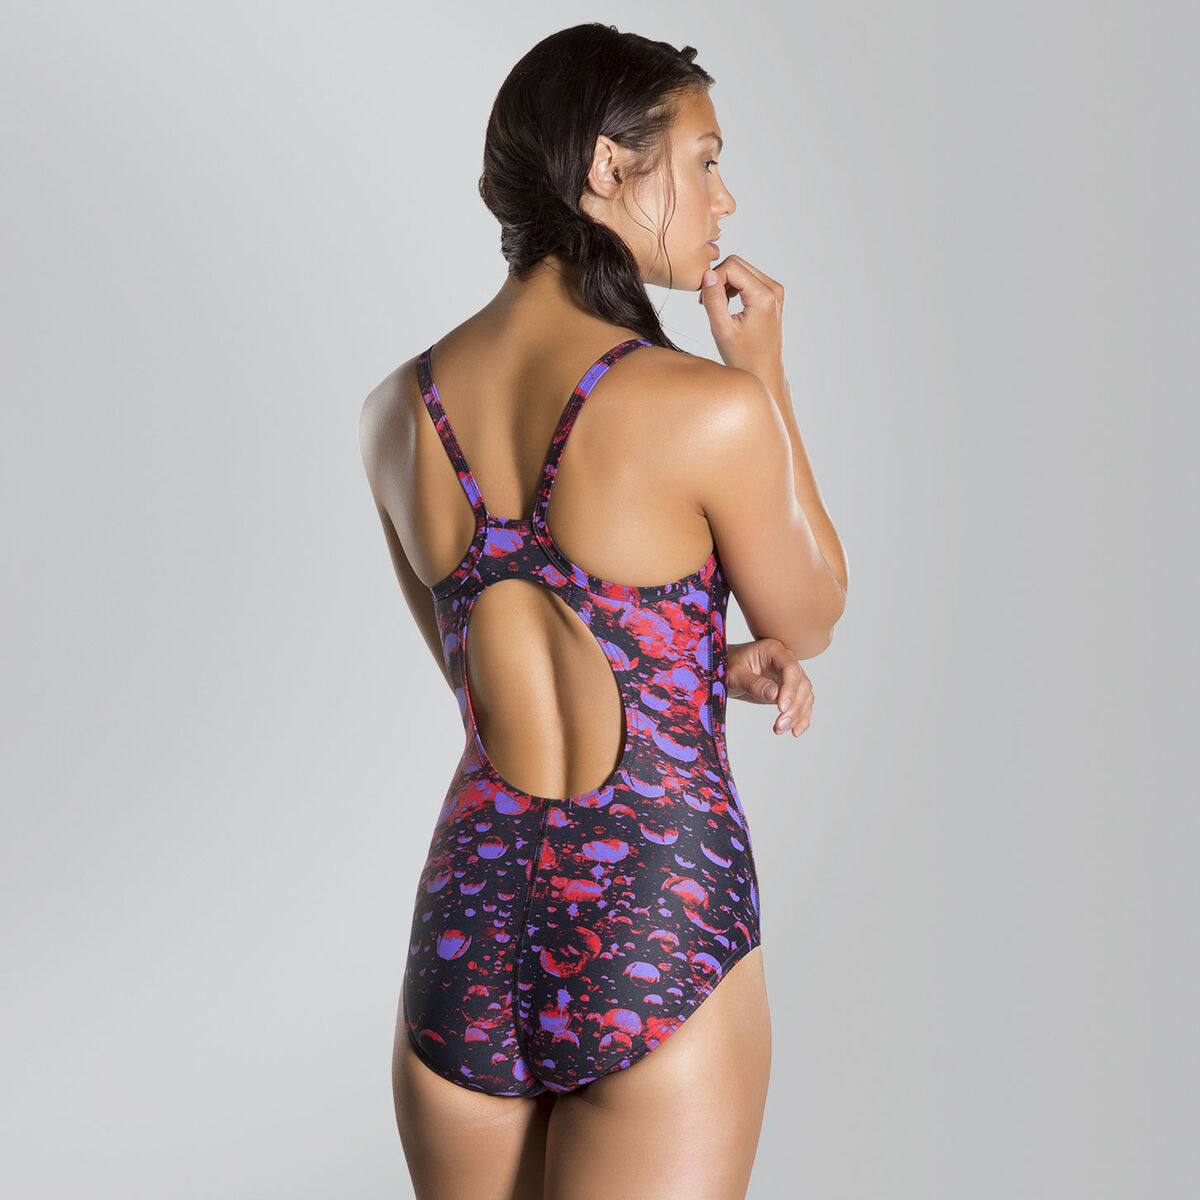 Microcosmos Placement Thinstrap Muscleback Swimsuit